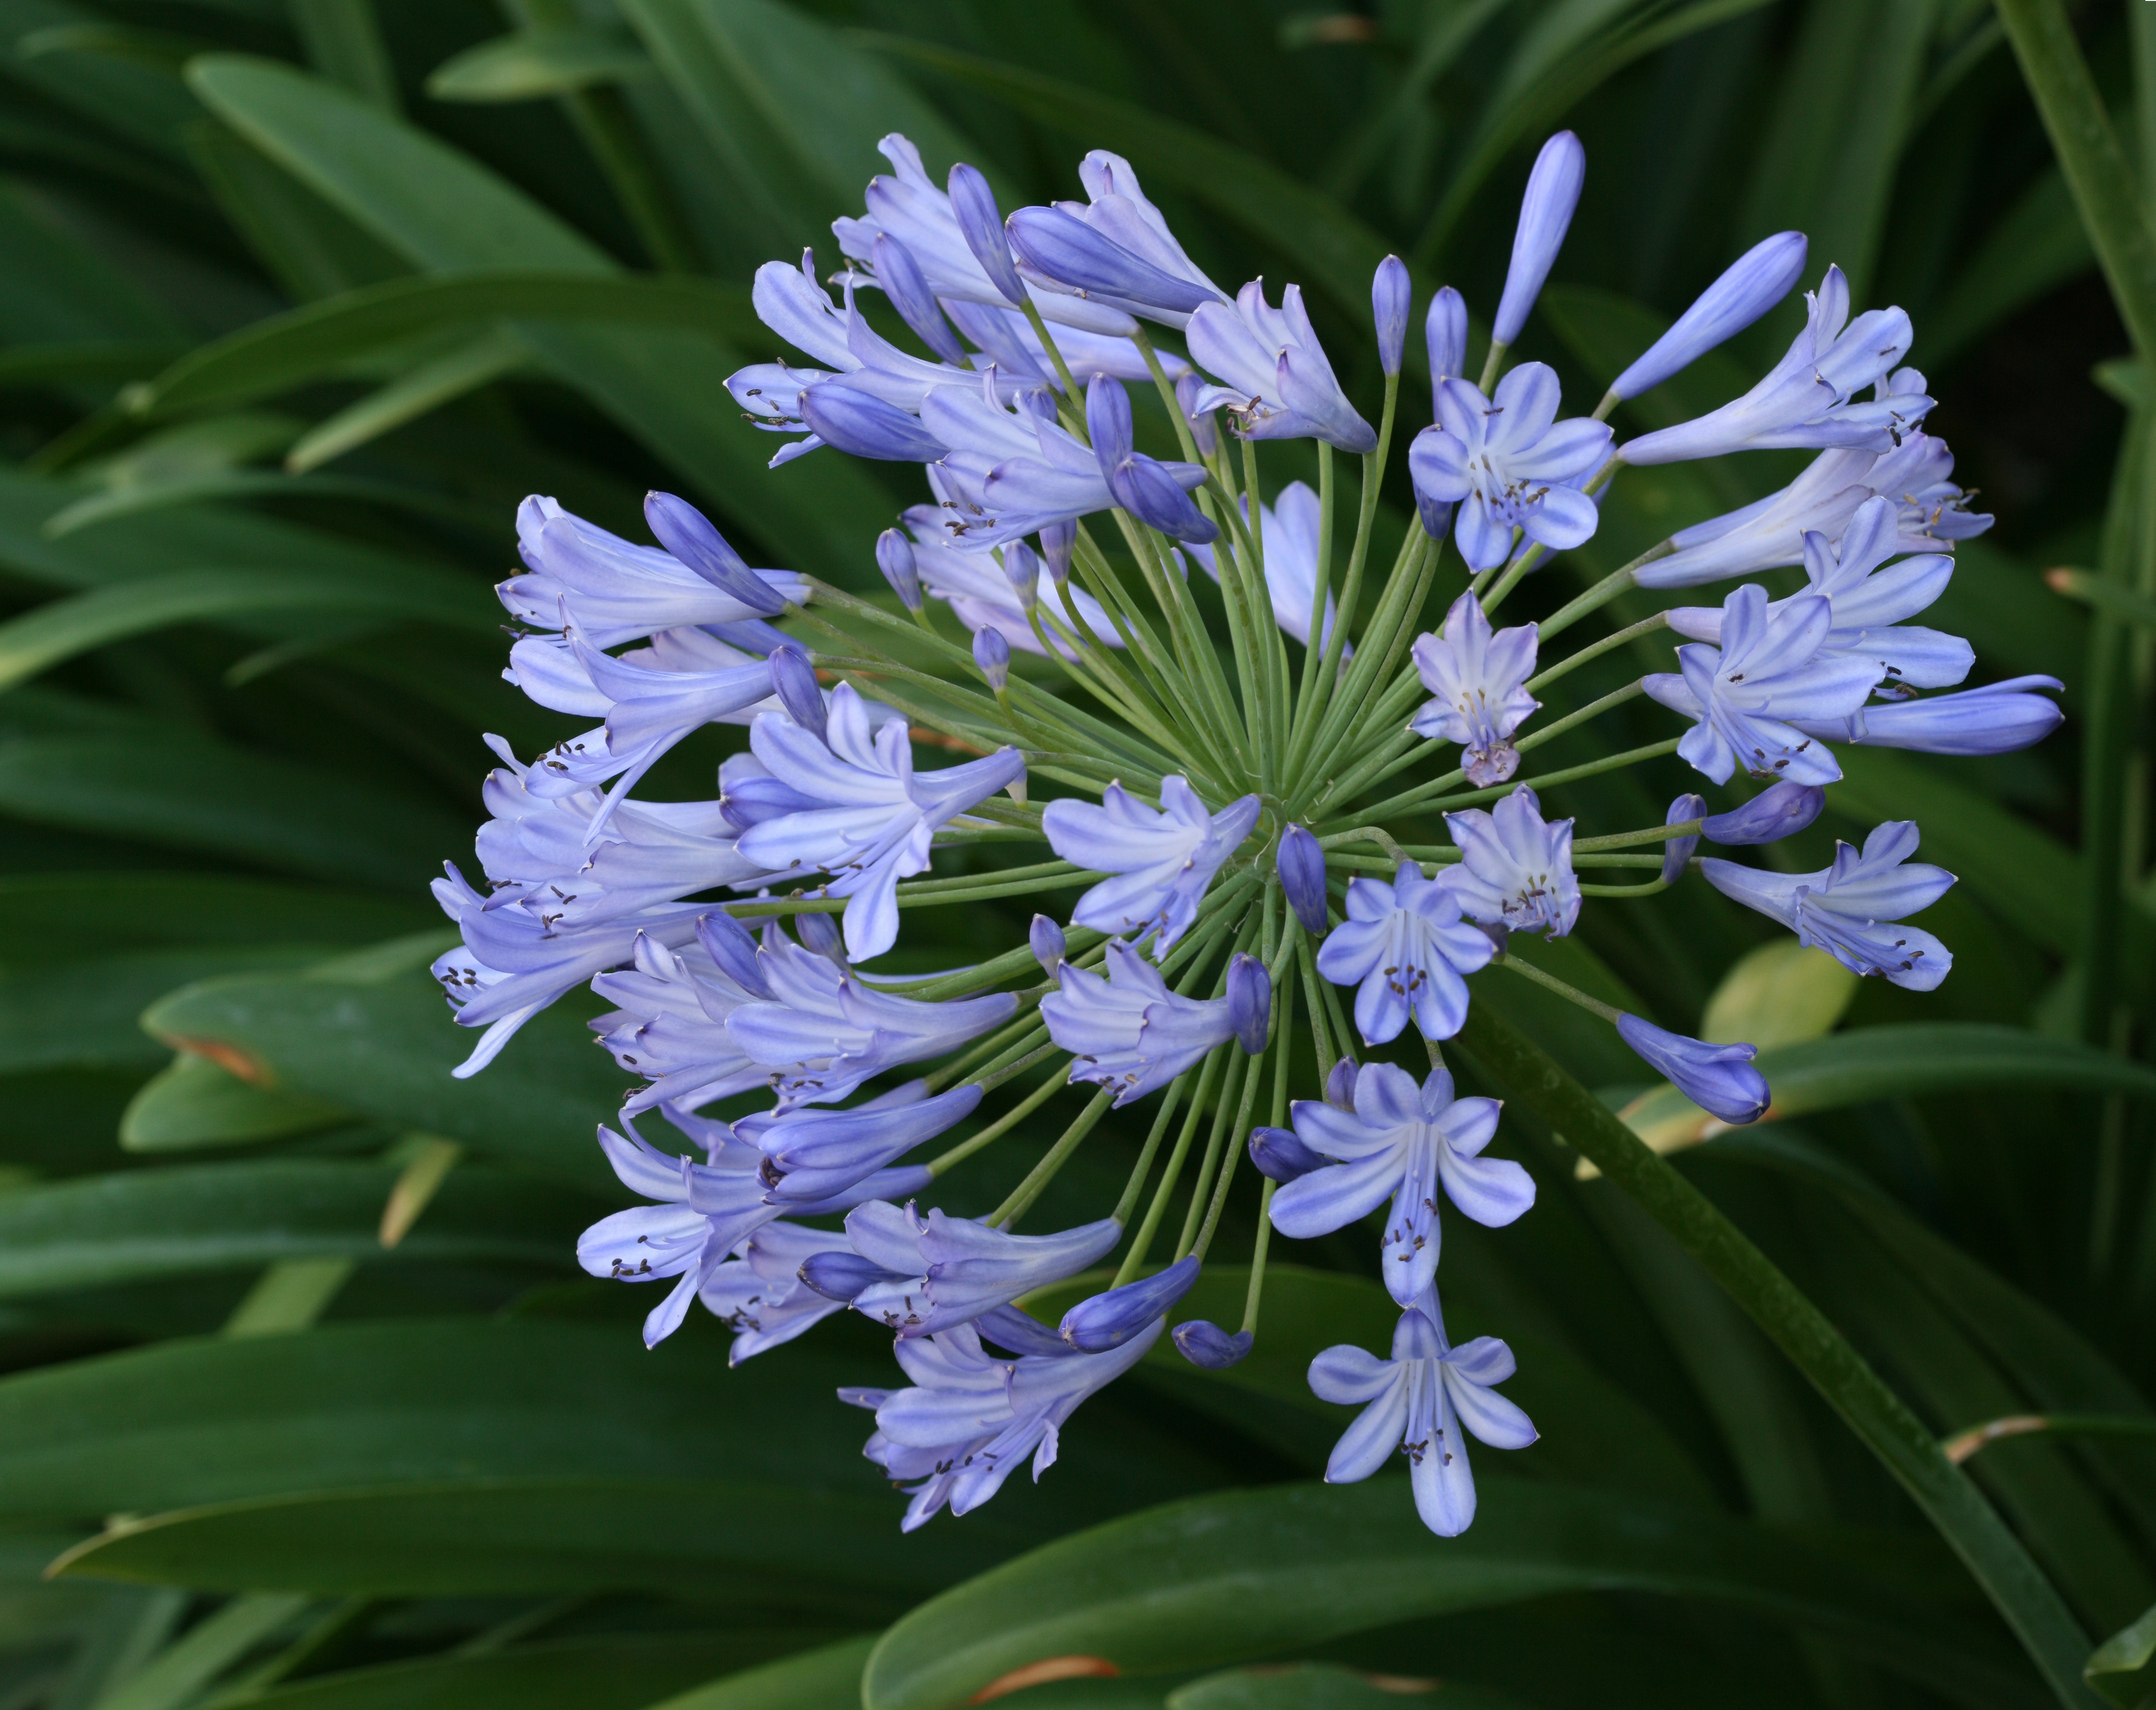 Agapanthus In New Zealand Wikipedia